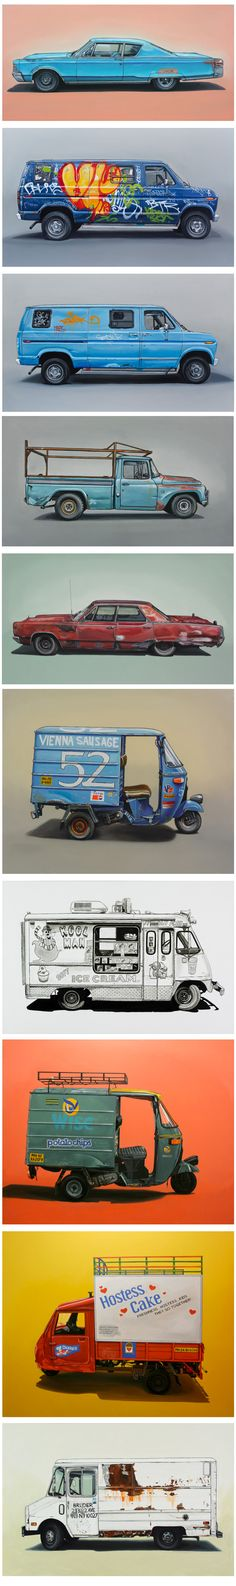 By Kevin Cyr. Brooklyn artist Kevin Cyr embraces the rough and rusty world of derelict vehicles.  #illustration #auto_rickshaw #three_wheeler http://www.kevincyr.net/index.php?/about-this-site/